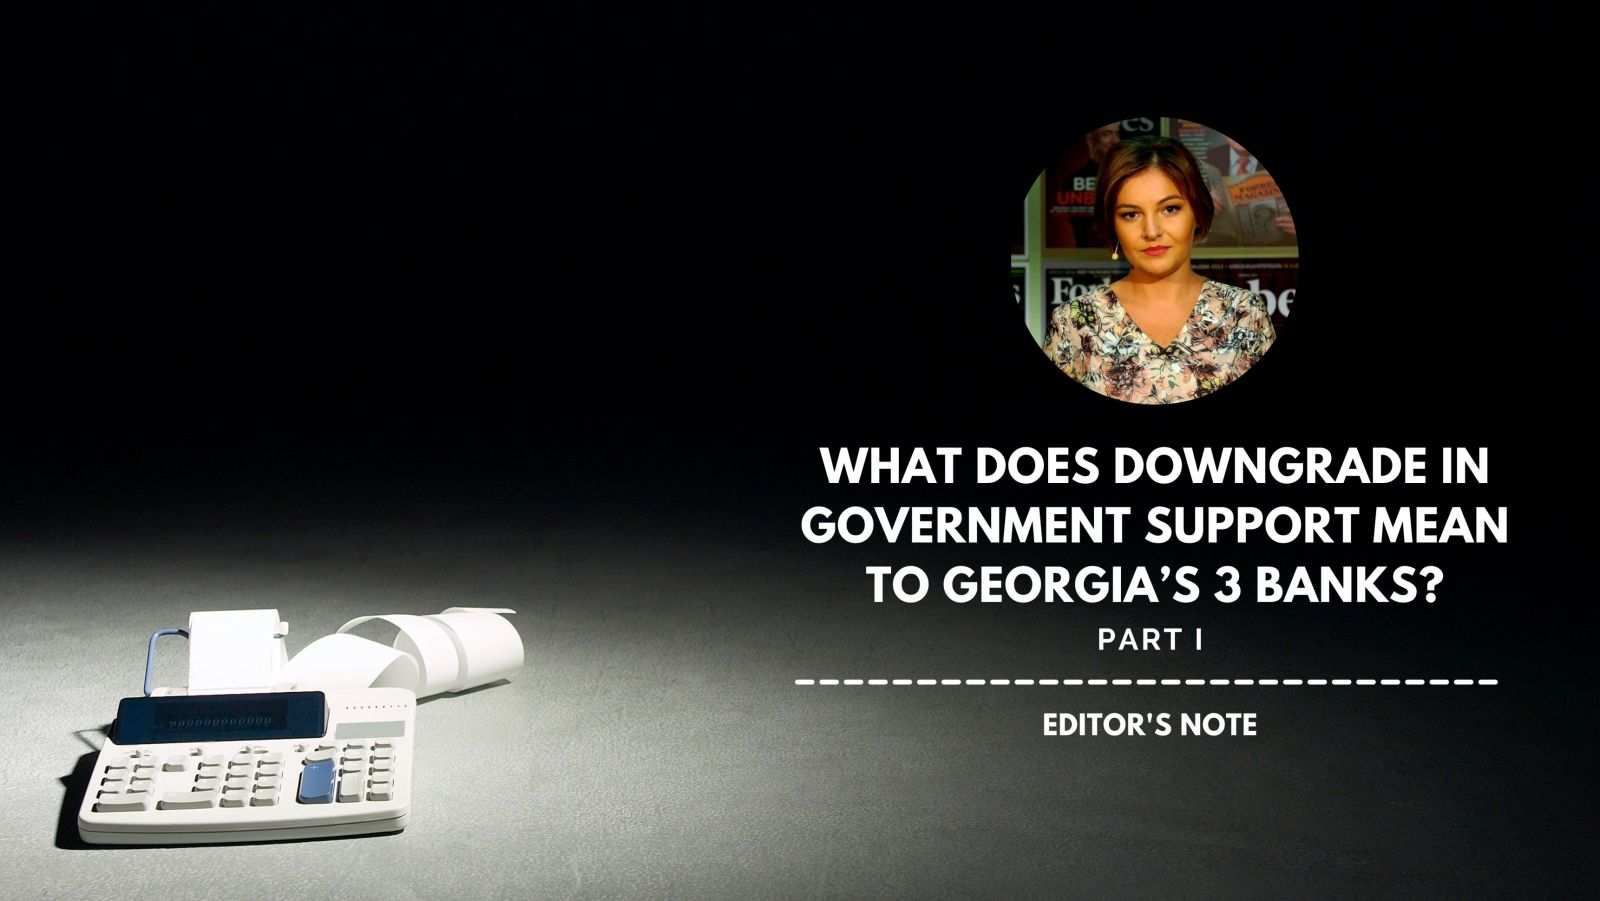 What Does Downgrade in Government Support Mean to Georgia's 3 Banks?